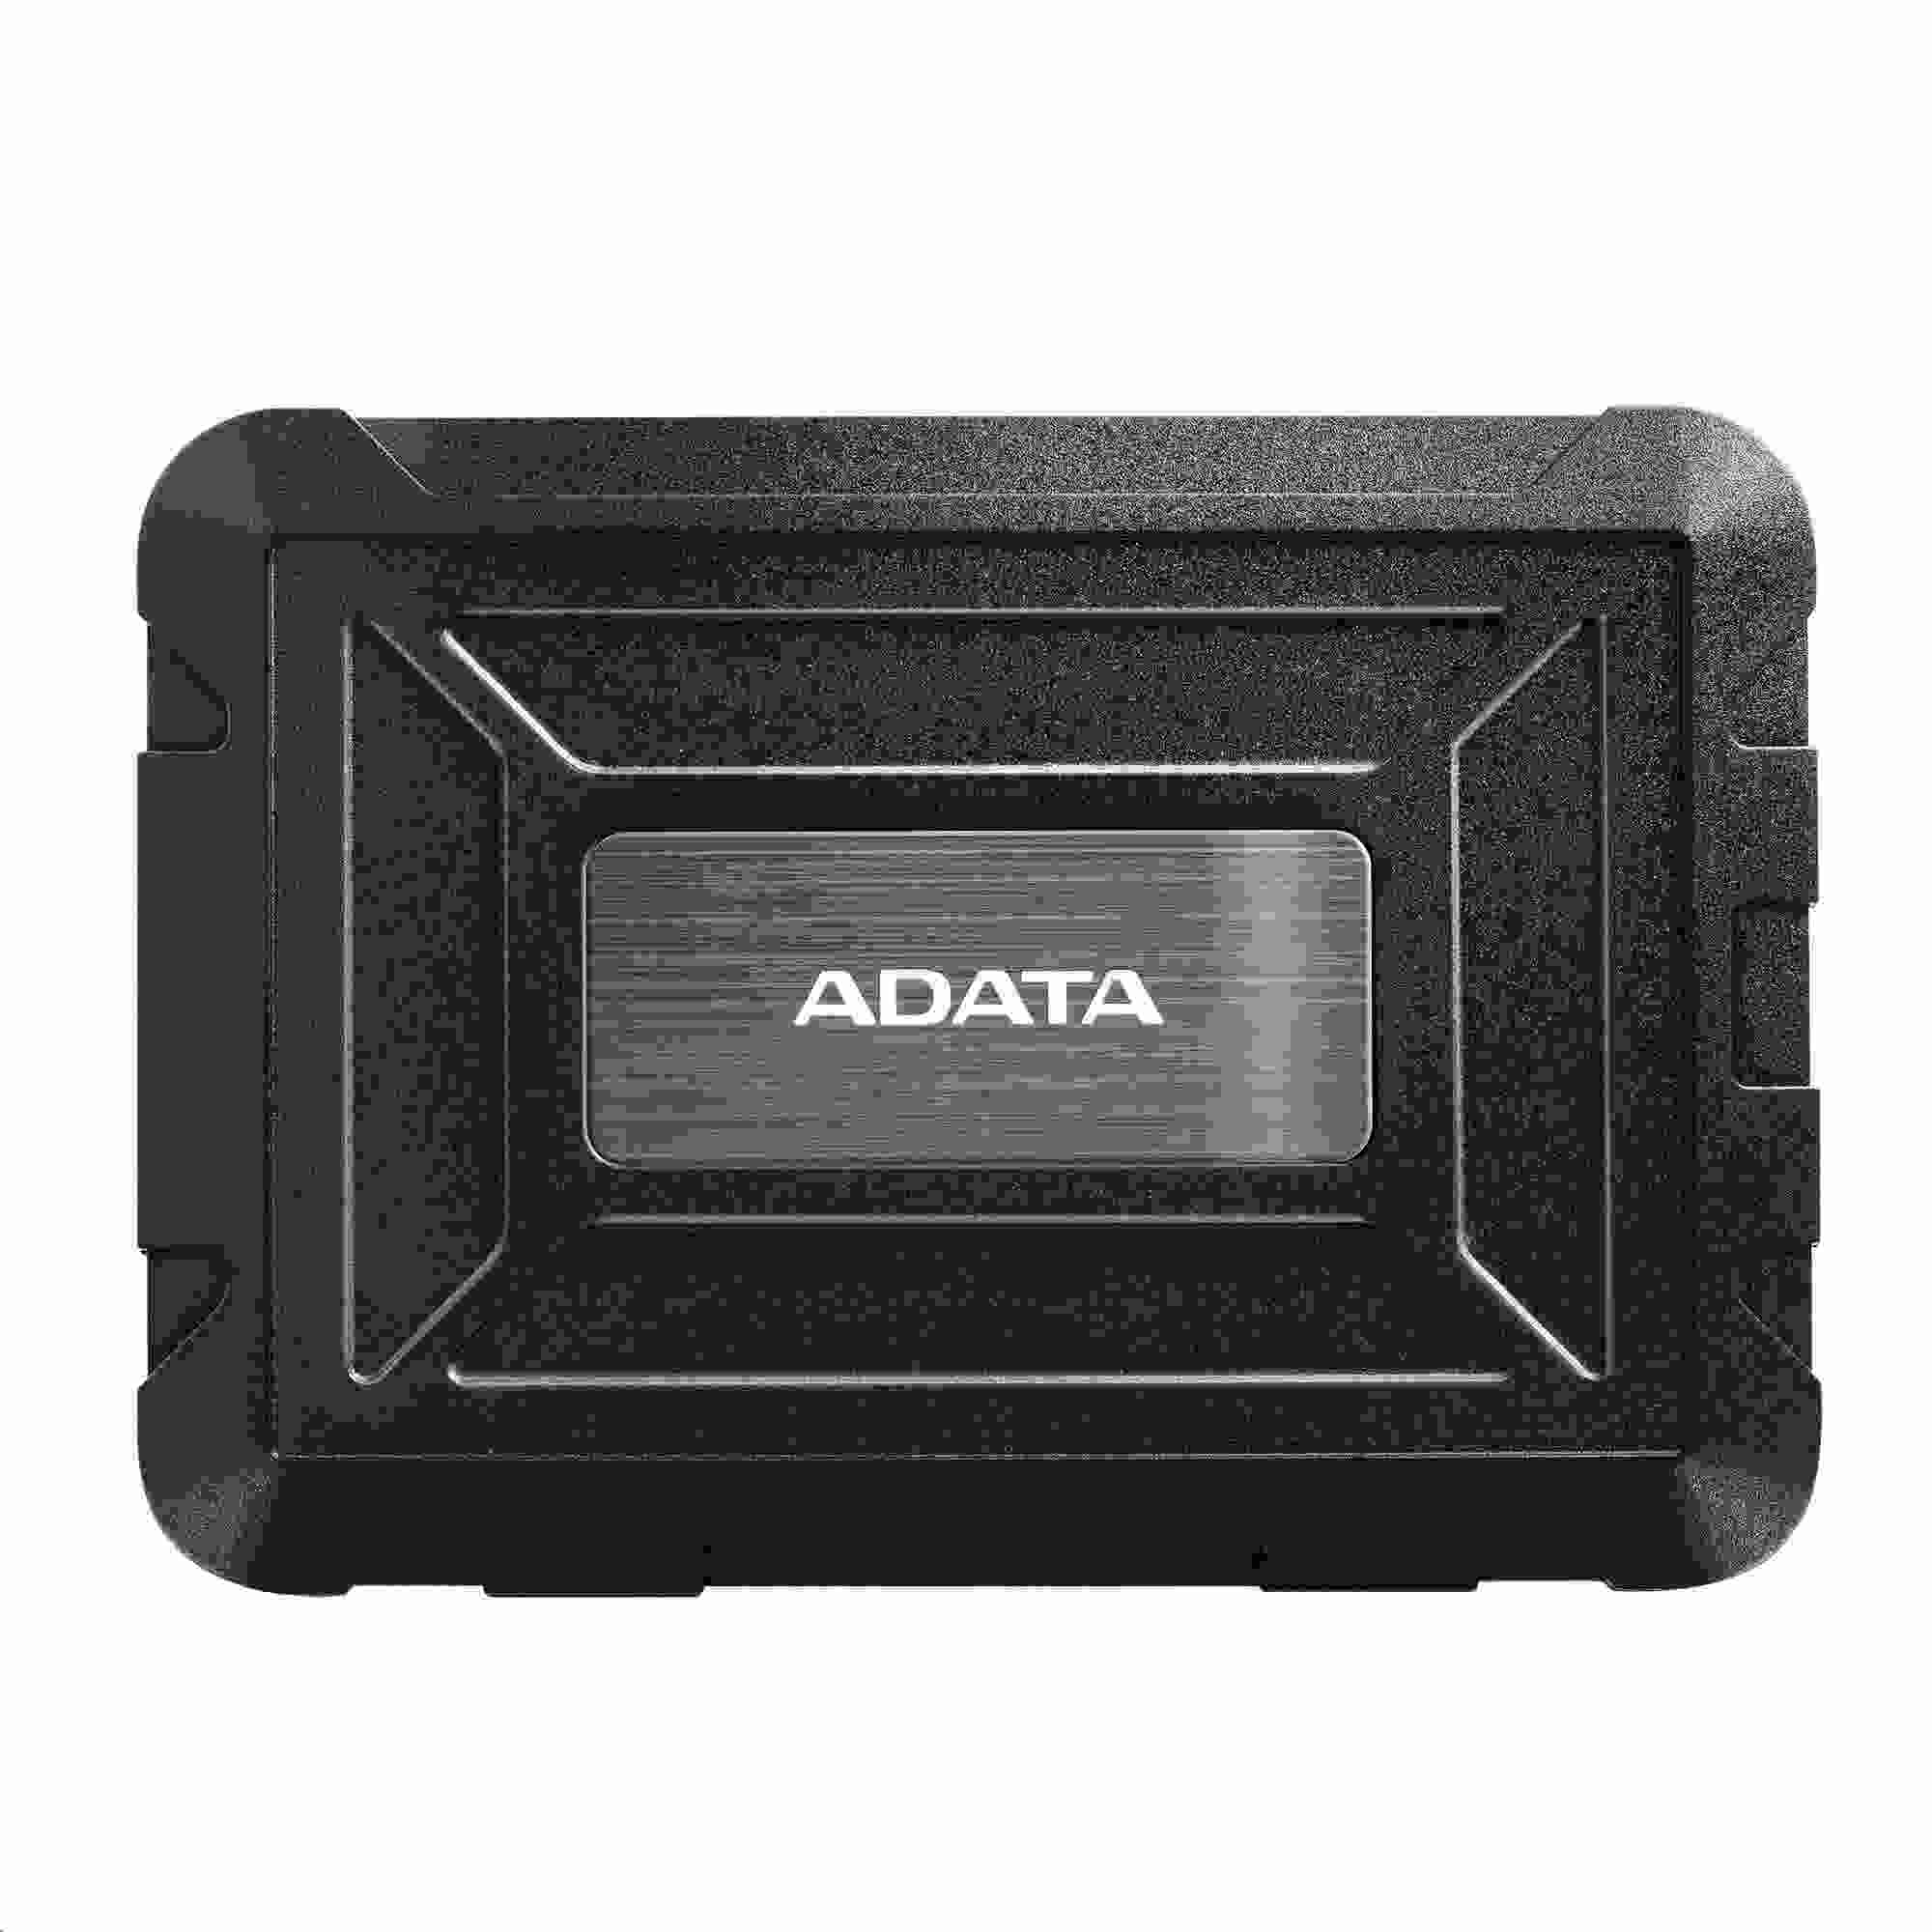 "ADATA Externí BOX ED600 Target audience 2,5"" USB 3.1 (7 mm/ 9.5mm HDD/SSD) black"